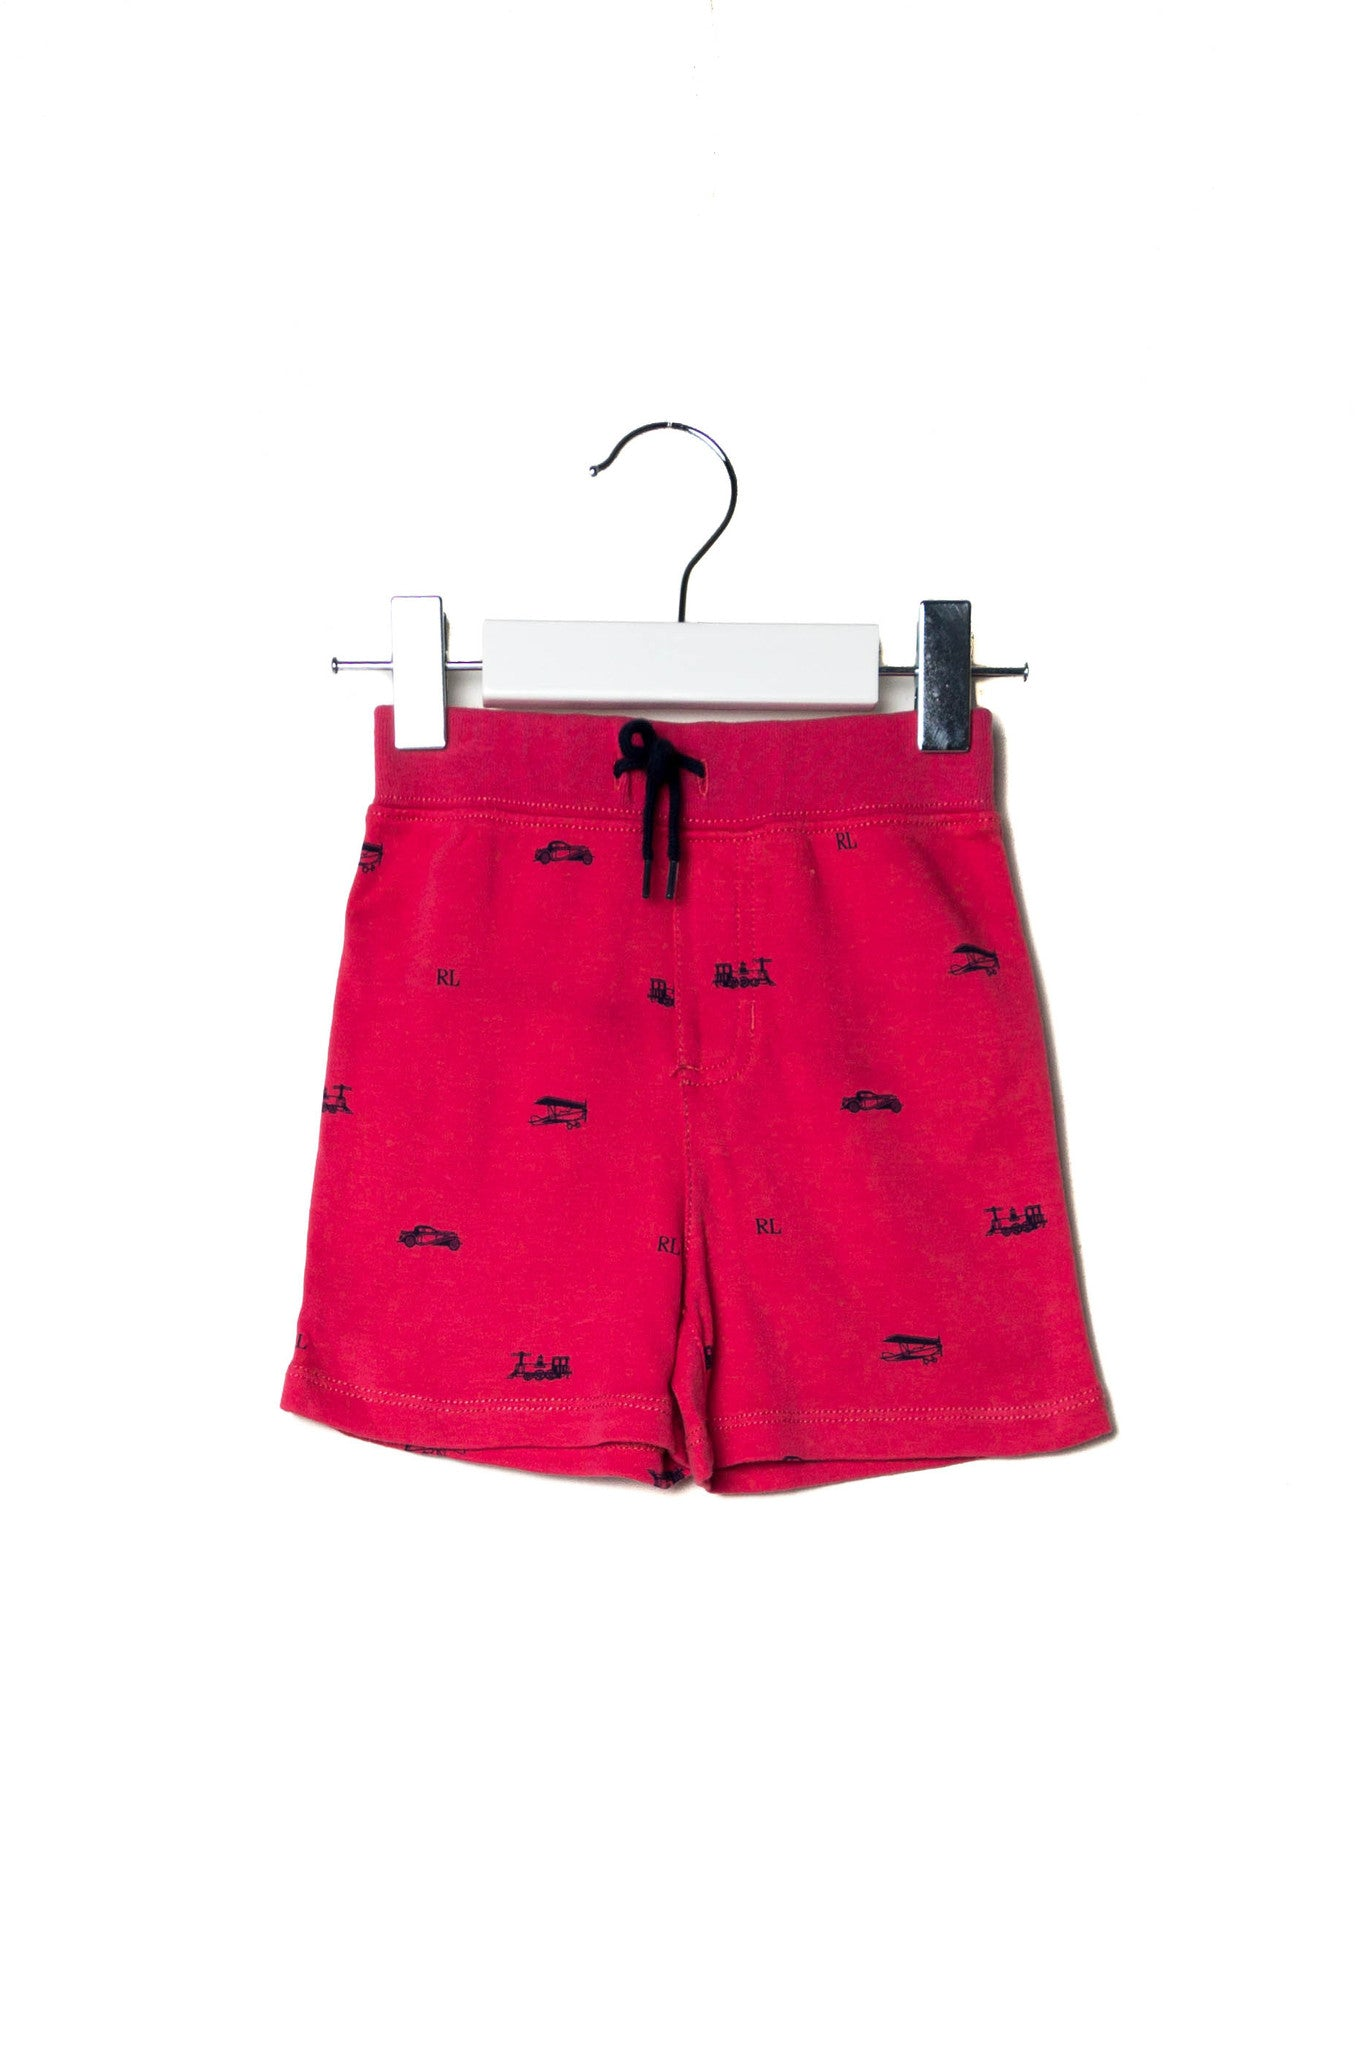 10002378 Ralph Lauren Baby~Shorts 6M at Retykle